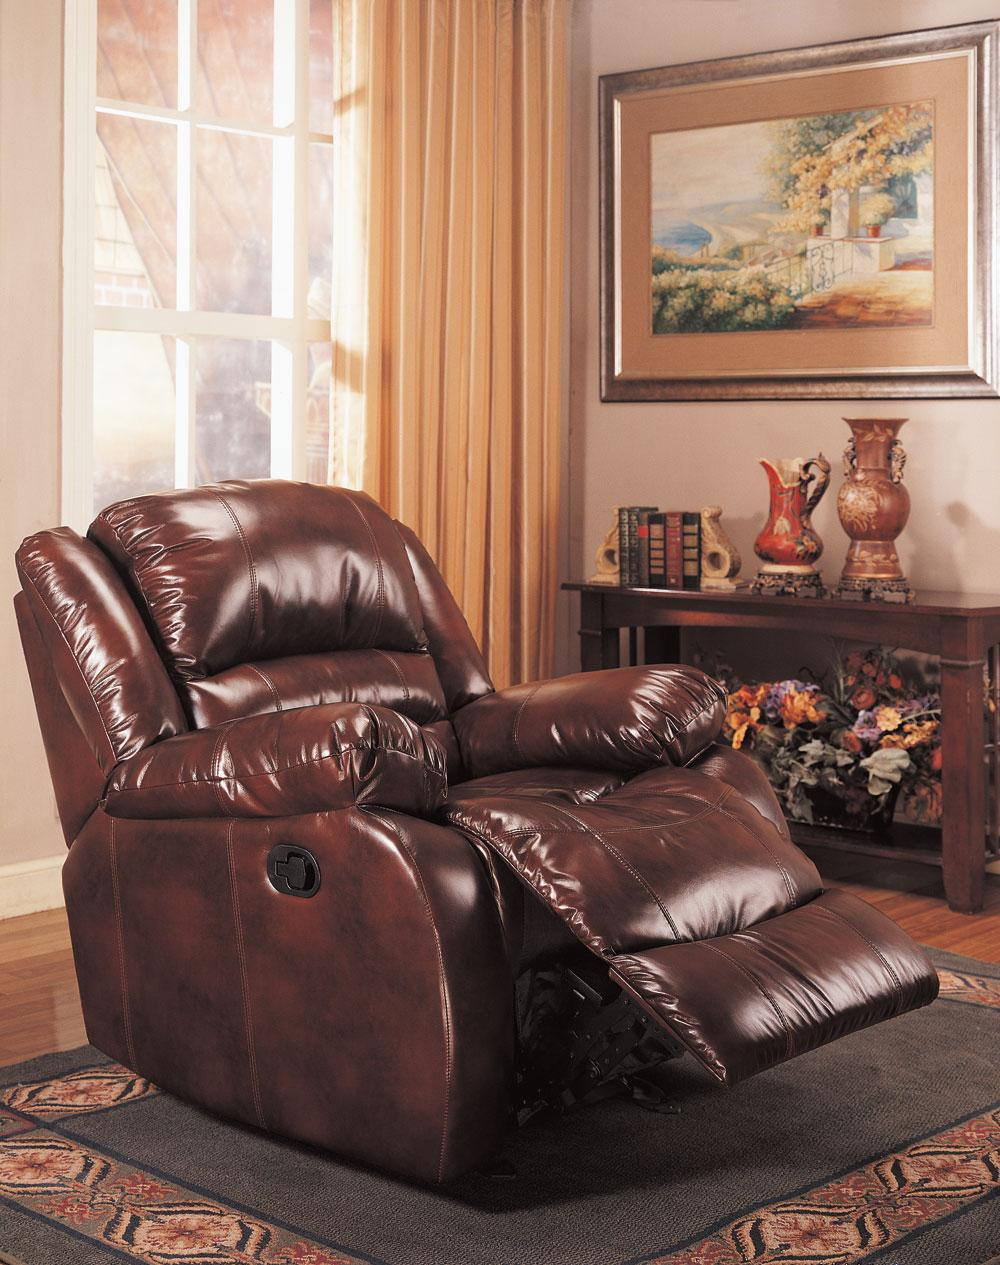 Burgundy rocker recliner